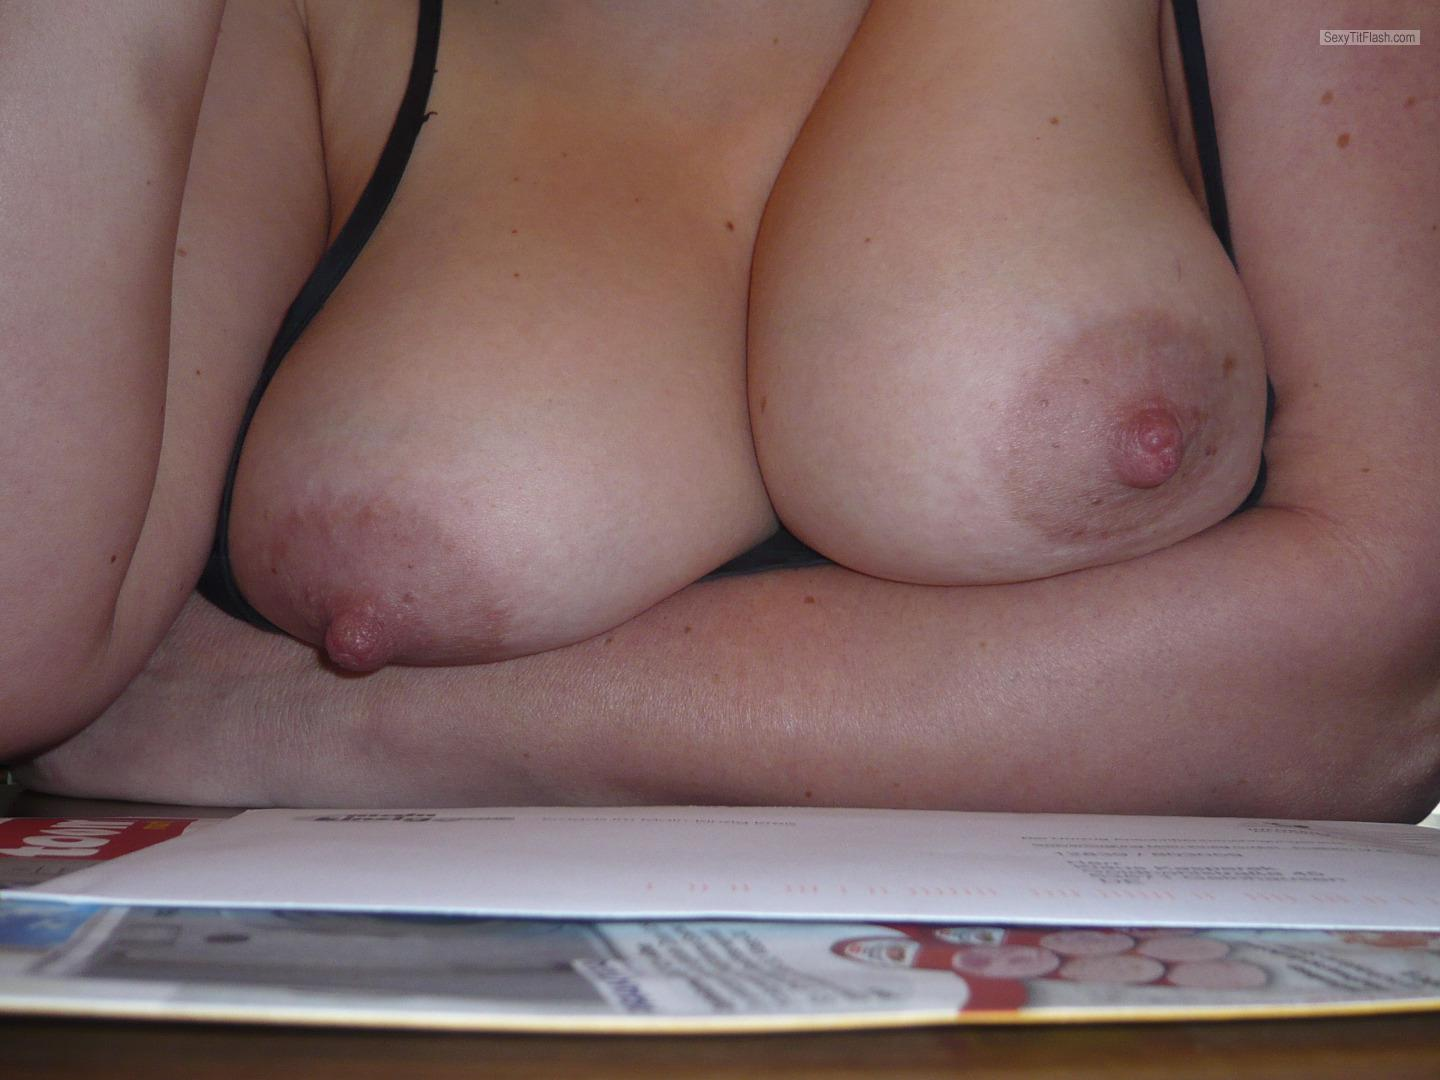 Tit Flash: Wife's Big Tits - Maurice09 from Germany